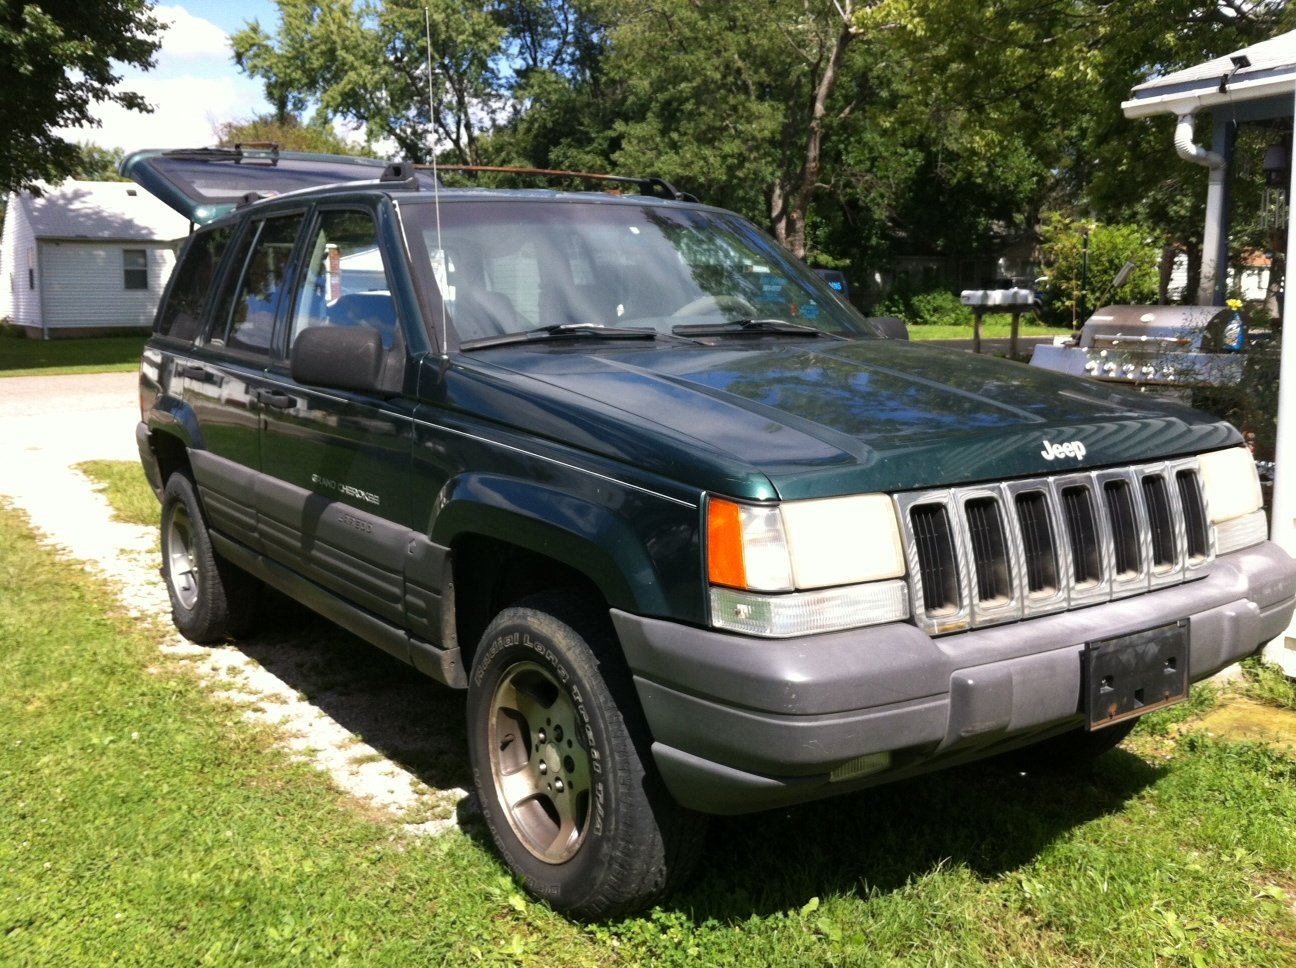 1996 jeep grand cherokee laredo pic. Cars Review. Best American Auto & Cars Review